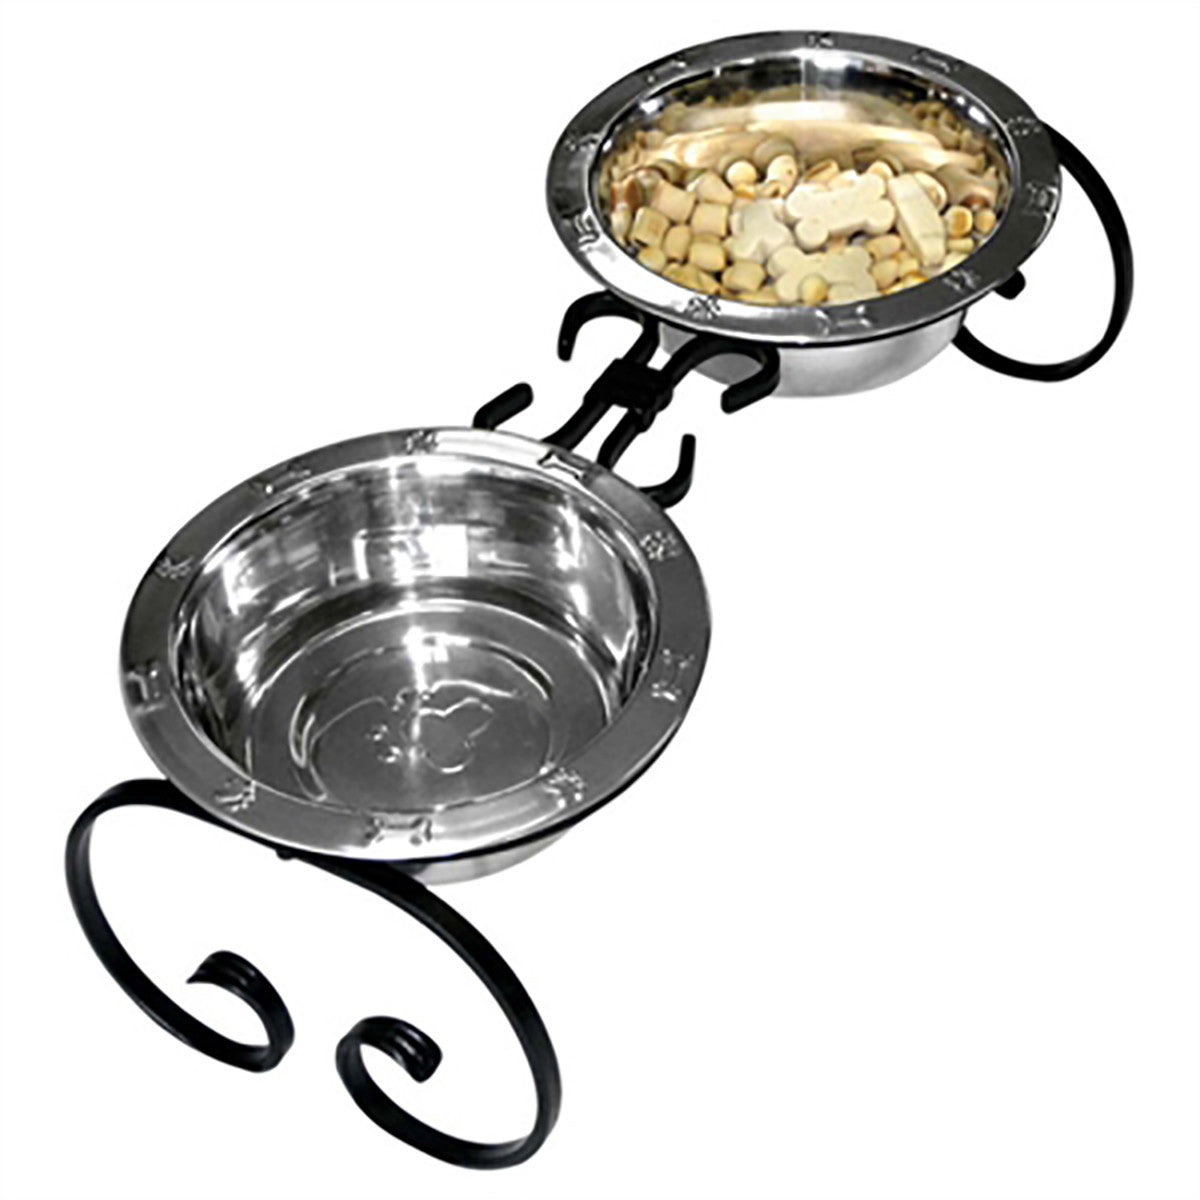 Classic Wrought Iron Dog Diner with Stainless Steel Bowls - Black - Dog toys